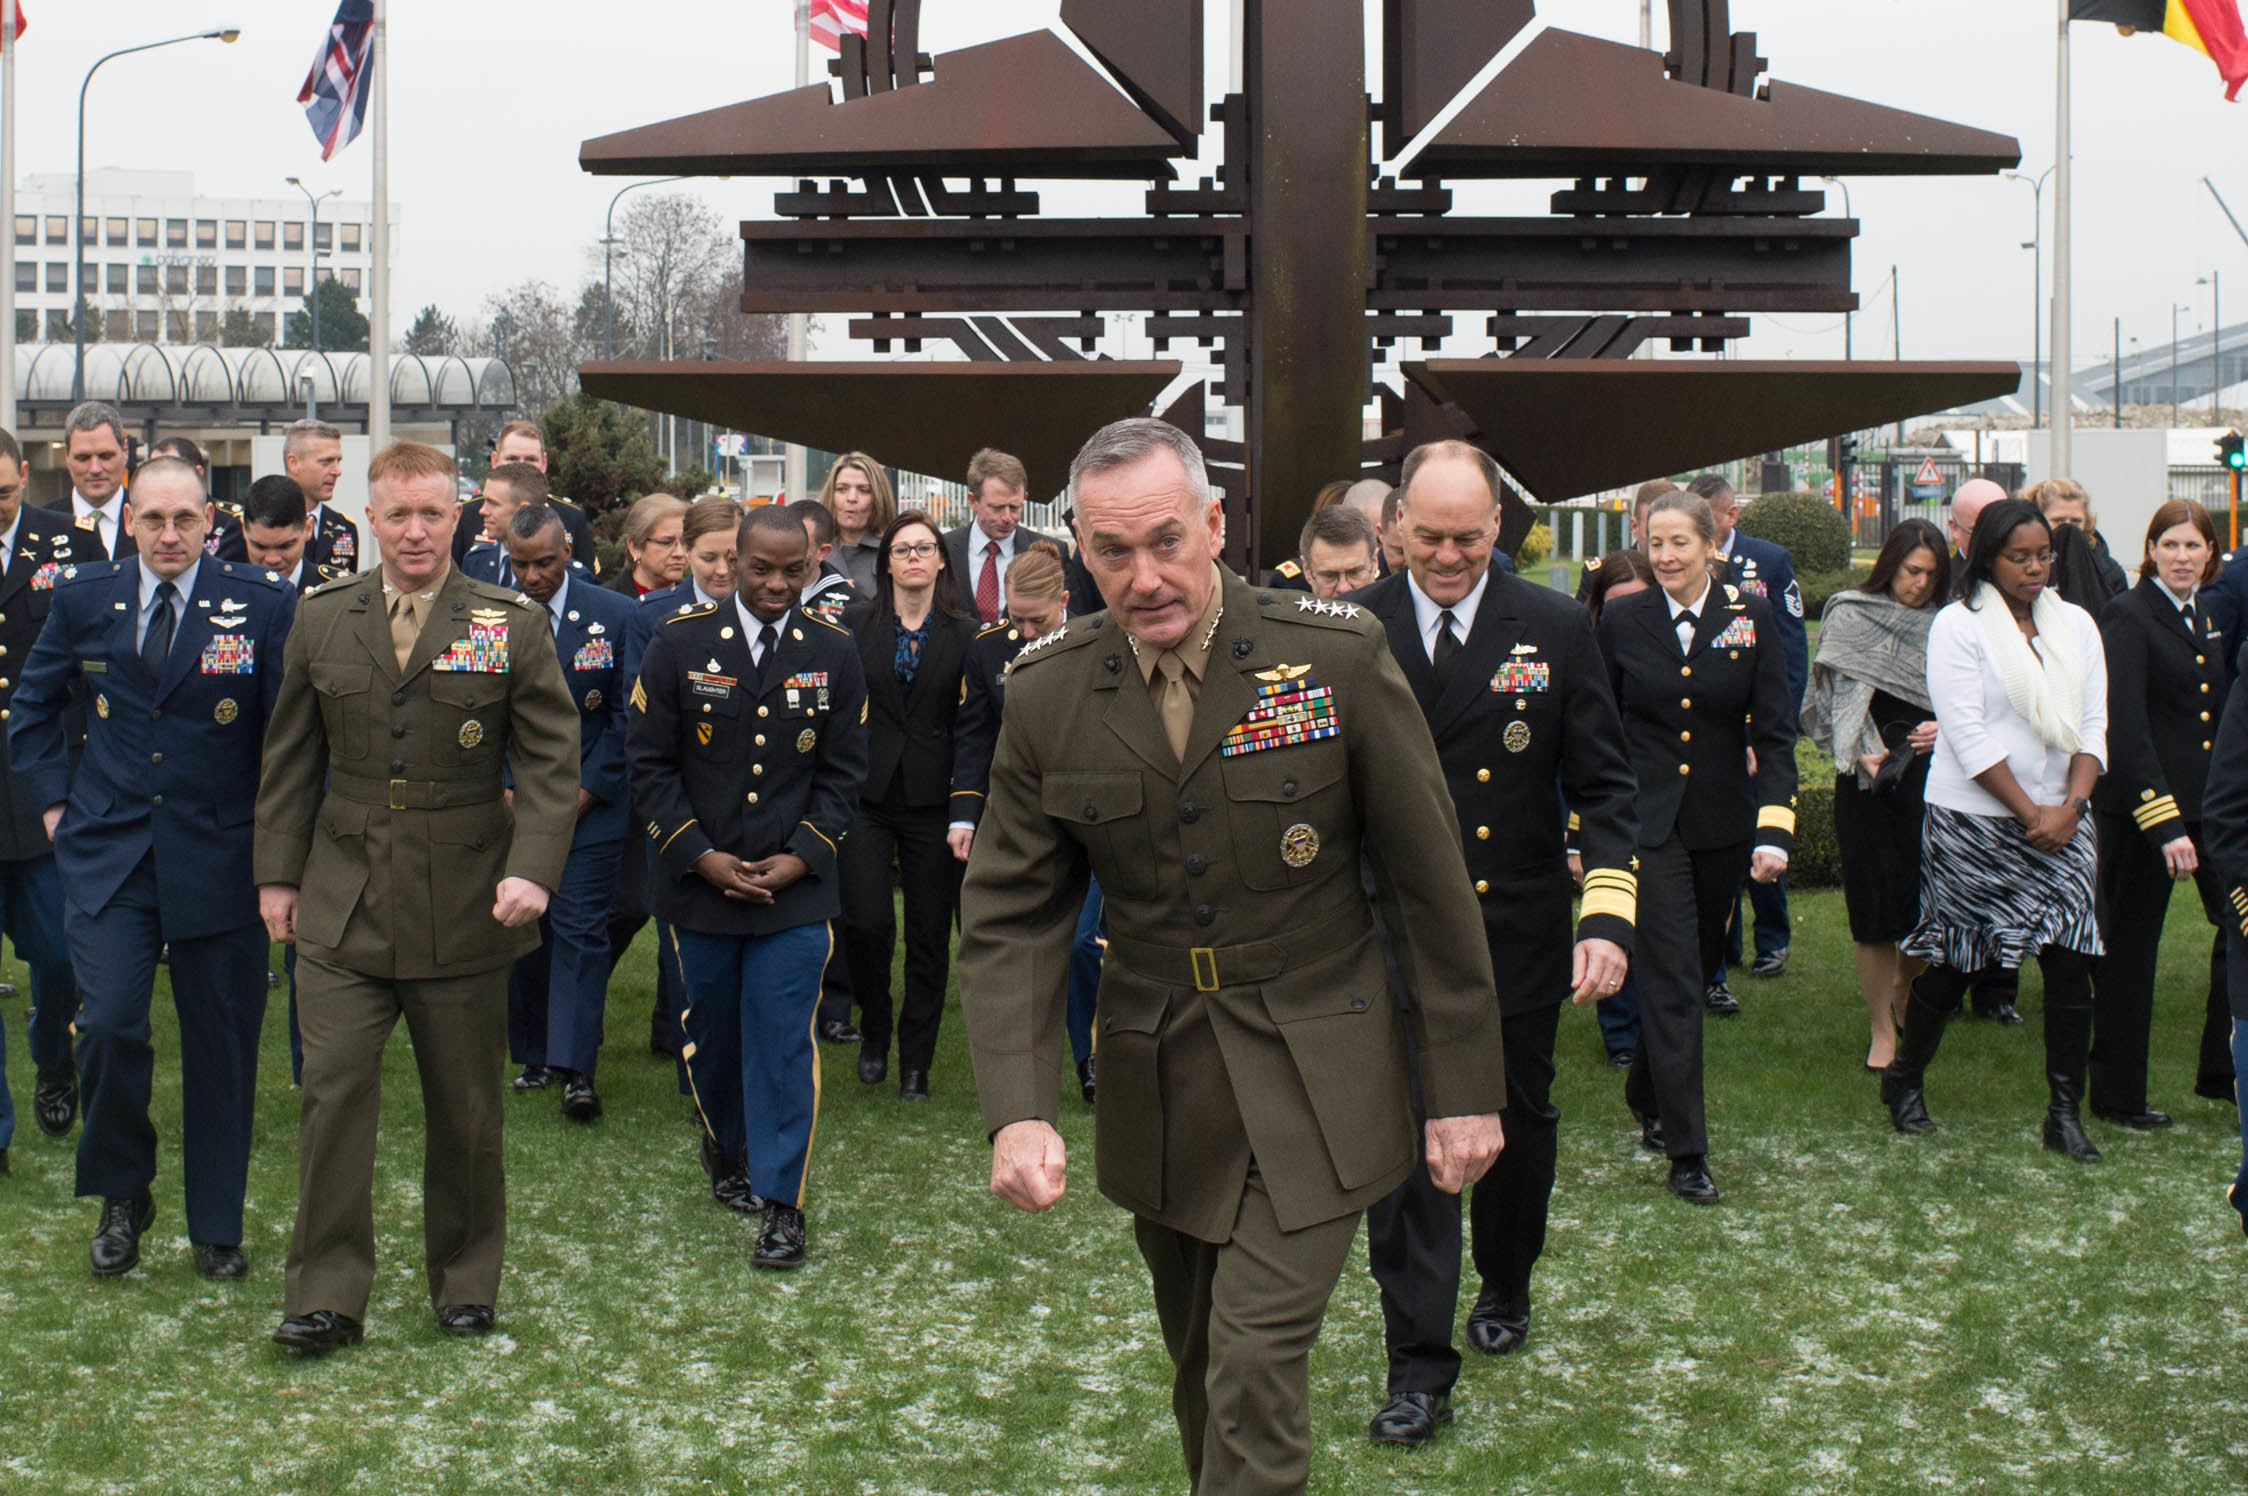 U.S. Ambassador to North Atlantic Treaty Organization (NATO), Ambassador Douglas Lute, and U.S. Chairman of the Joint Chiefs of Staff, Marine Gen. Joseph F. Dunford Jr., meet at the NATO headquarters in Brussels, Belgium, Jan. 20, 2016. NATO provides a unique opportunity for member countries to consult and take decisions on security issues at all levels and in a variety of fields. (DoD photo by D. Myles Cullen/Released)